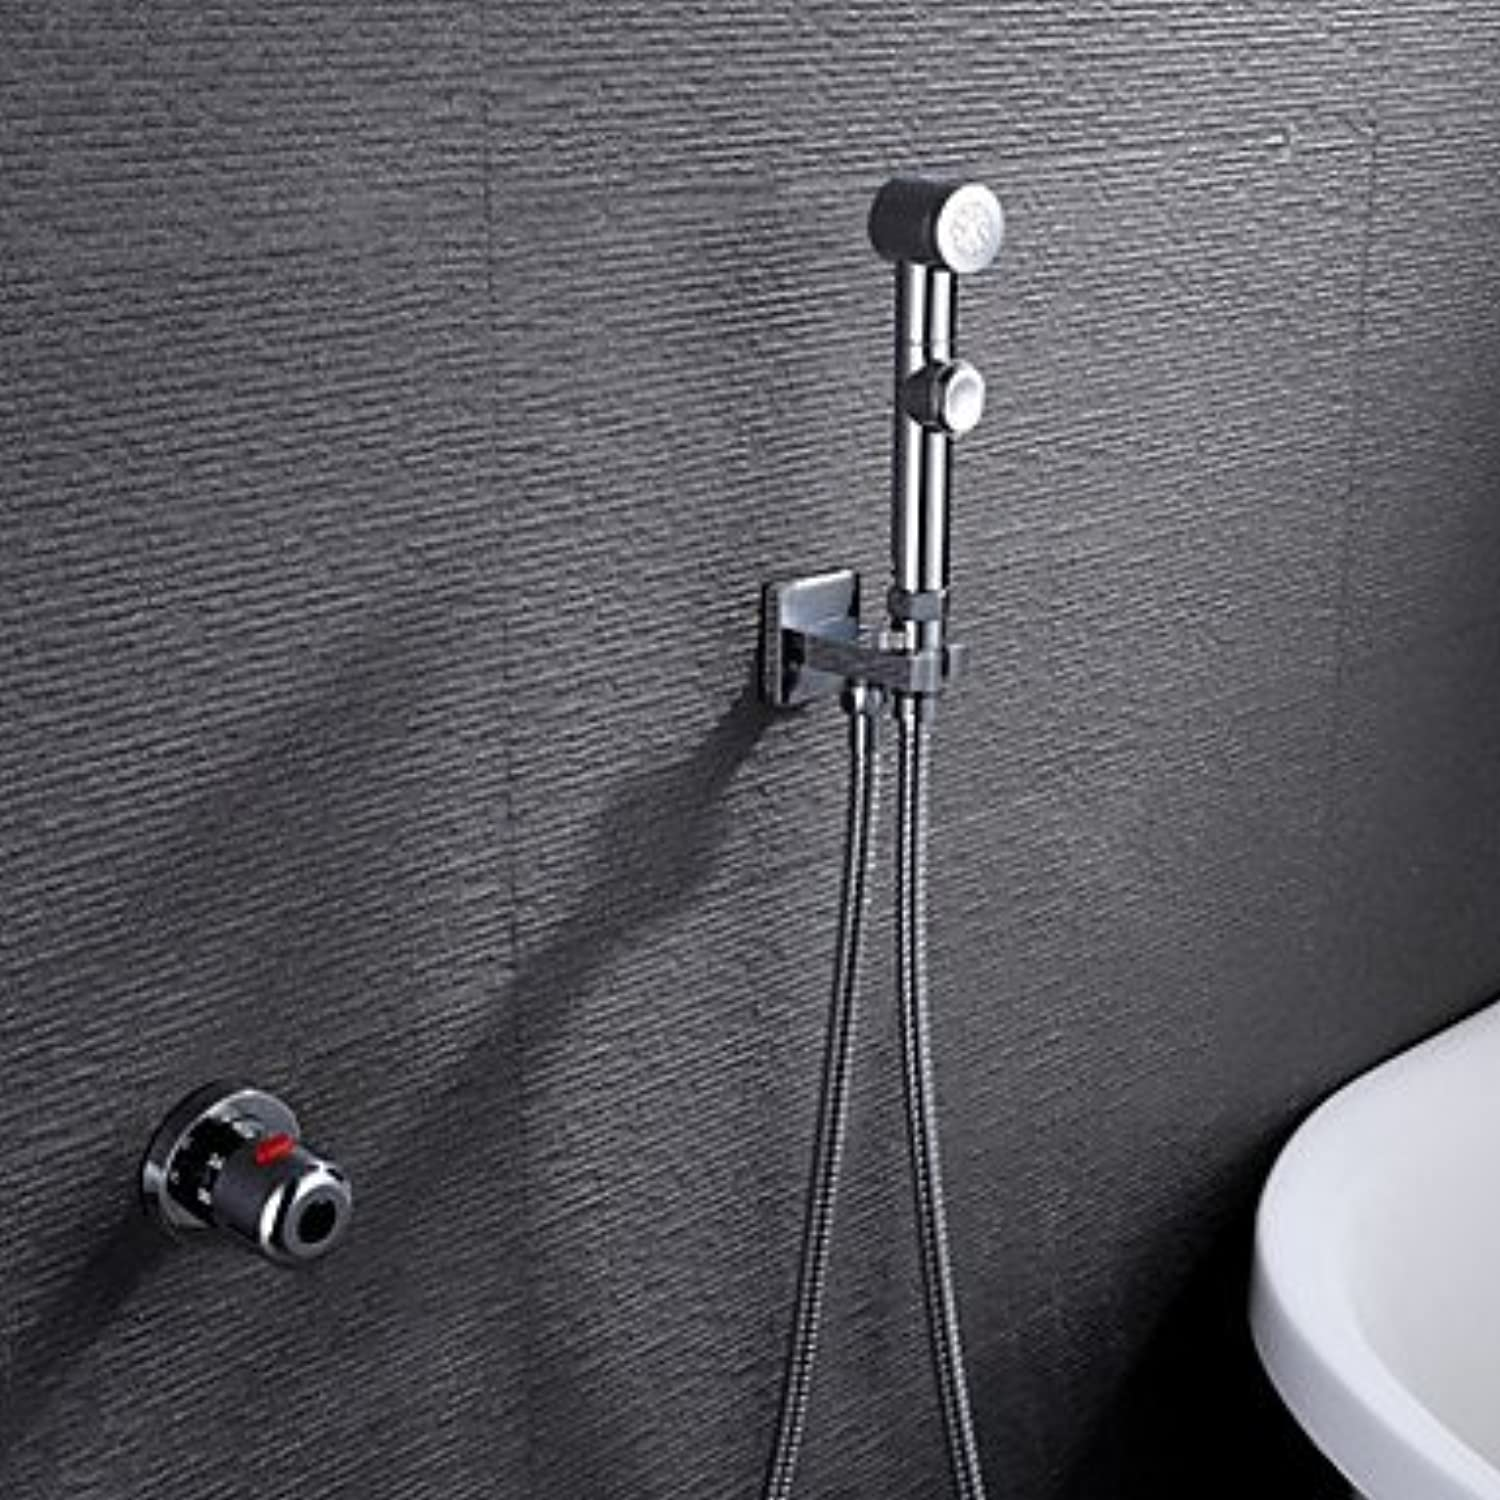 YAMEIJIA Contemporary Handshower Included Thermostatic Brass Valve Single Handle Two Holes Chrome, Shower Faucet